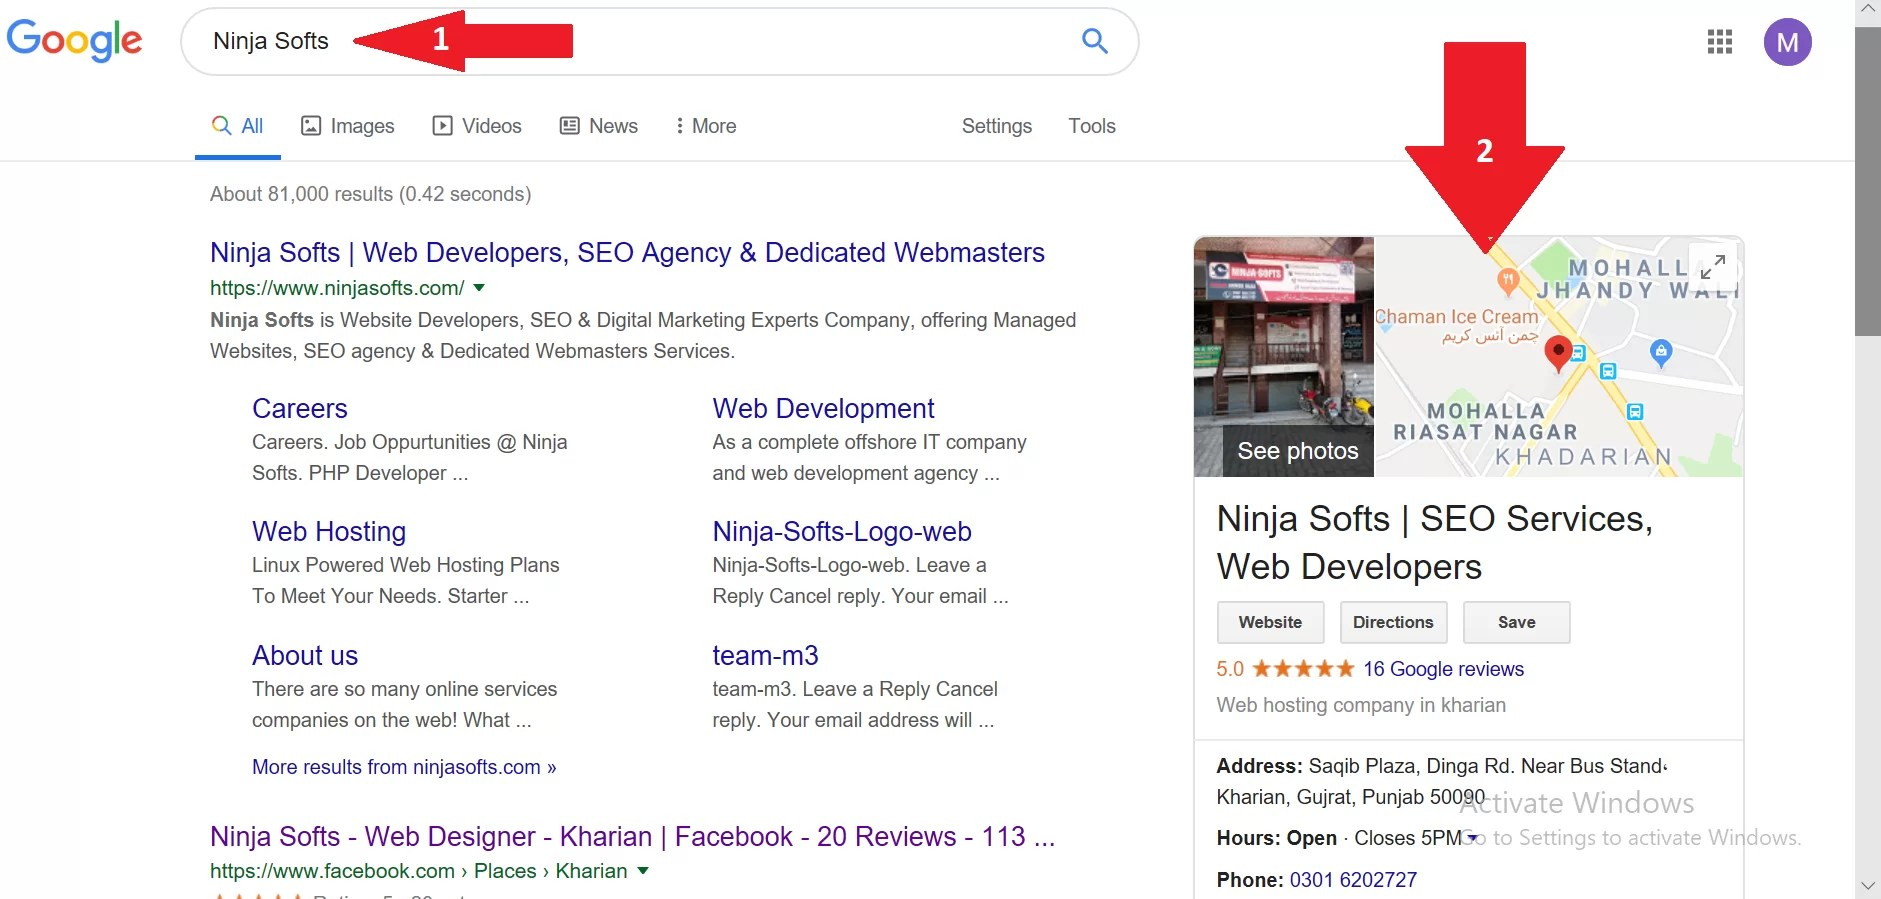 How to Write Reviews for Our Services on Google?